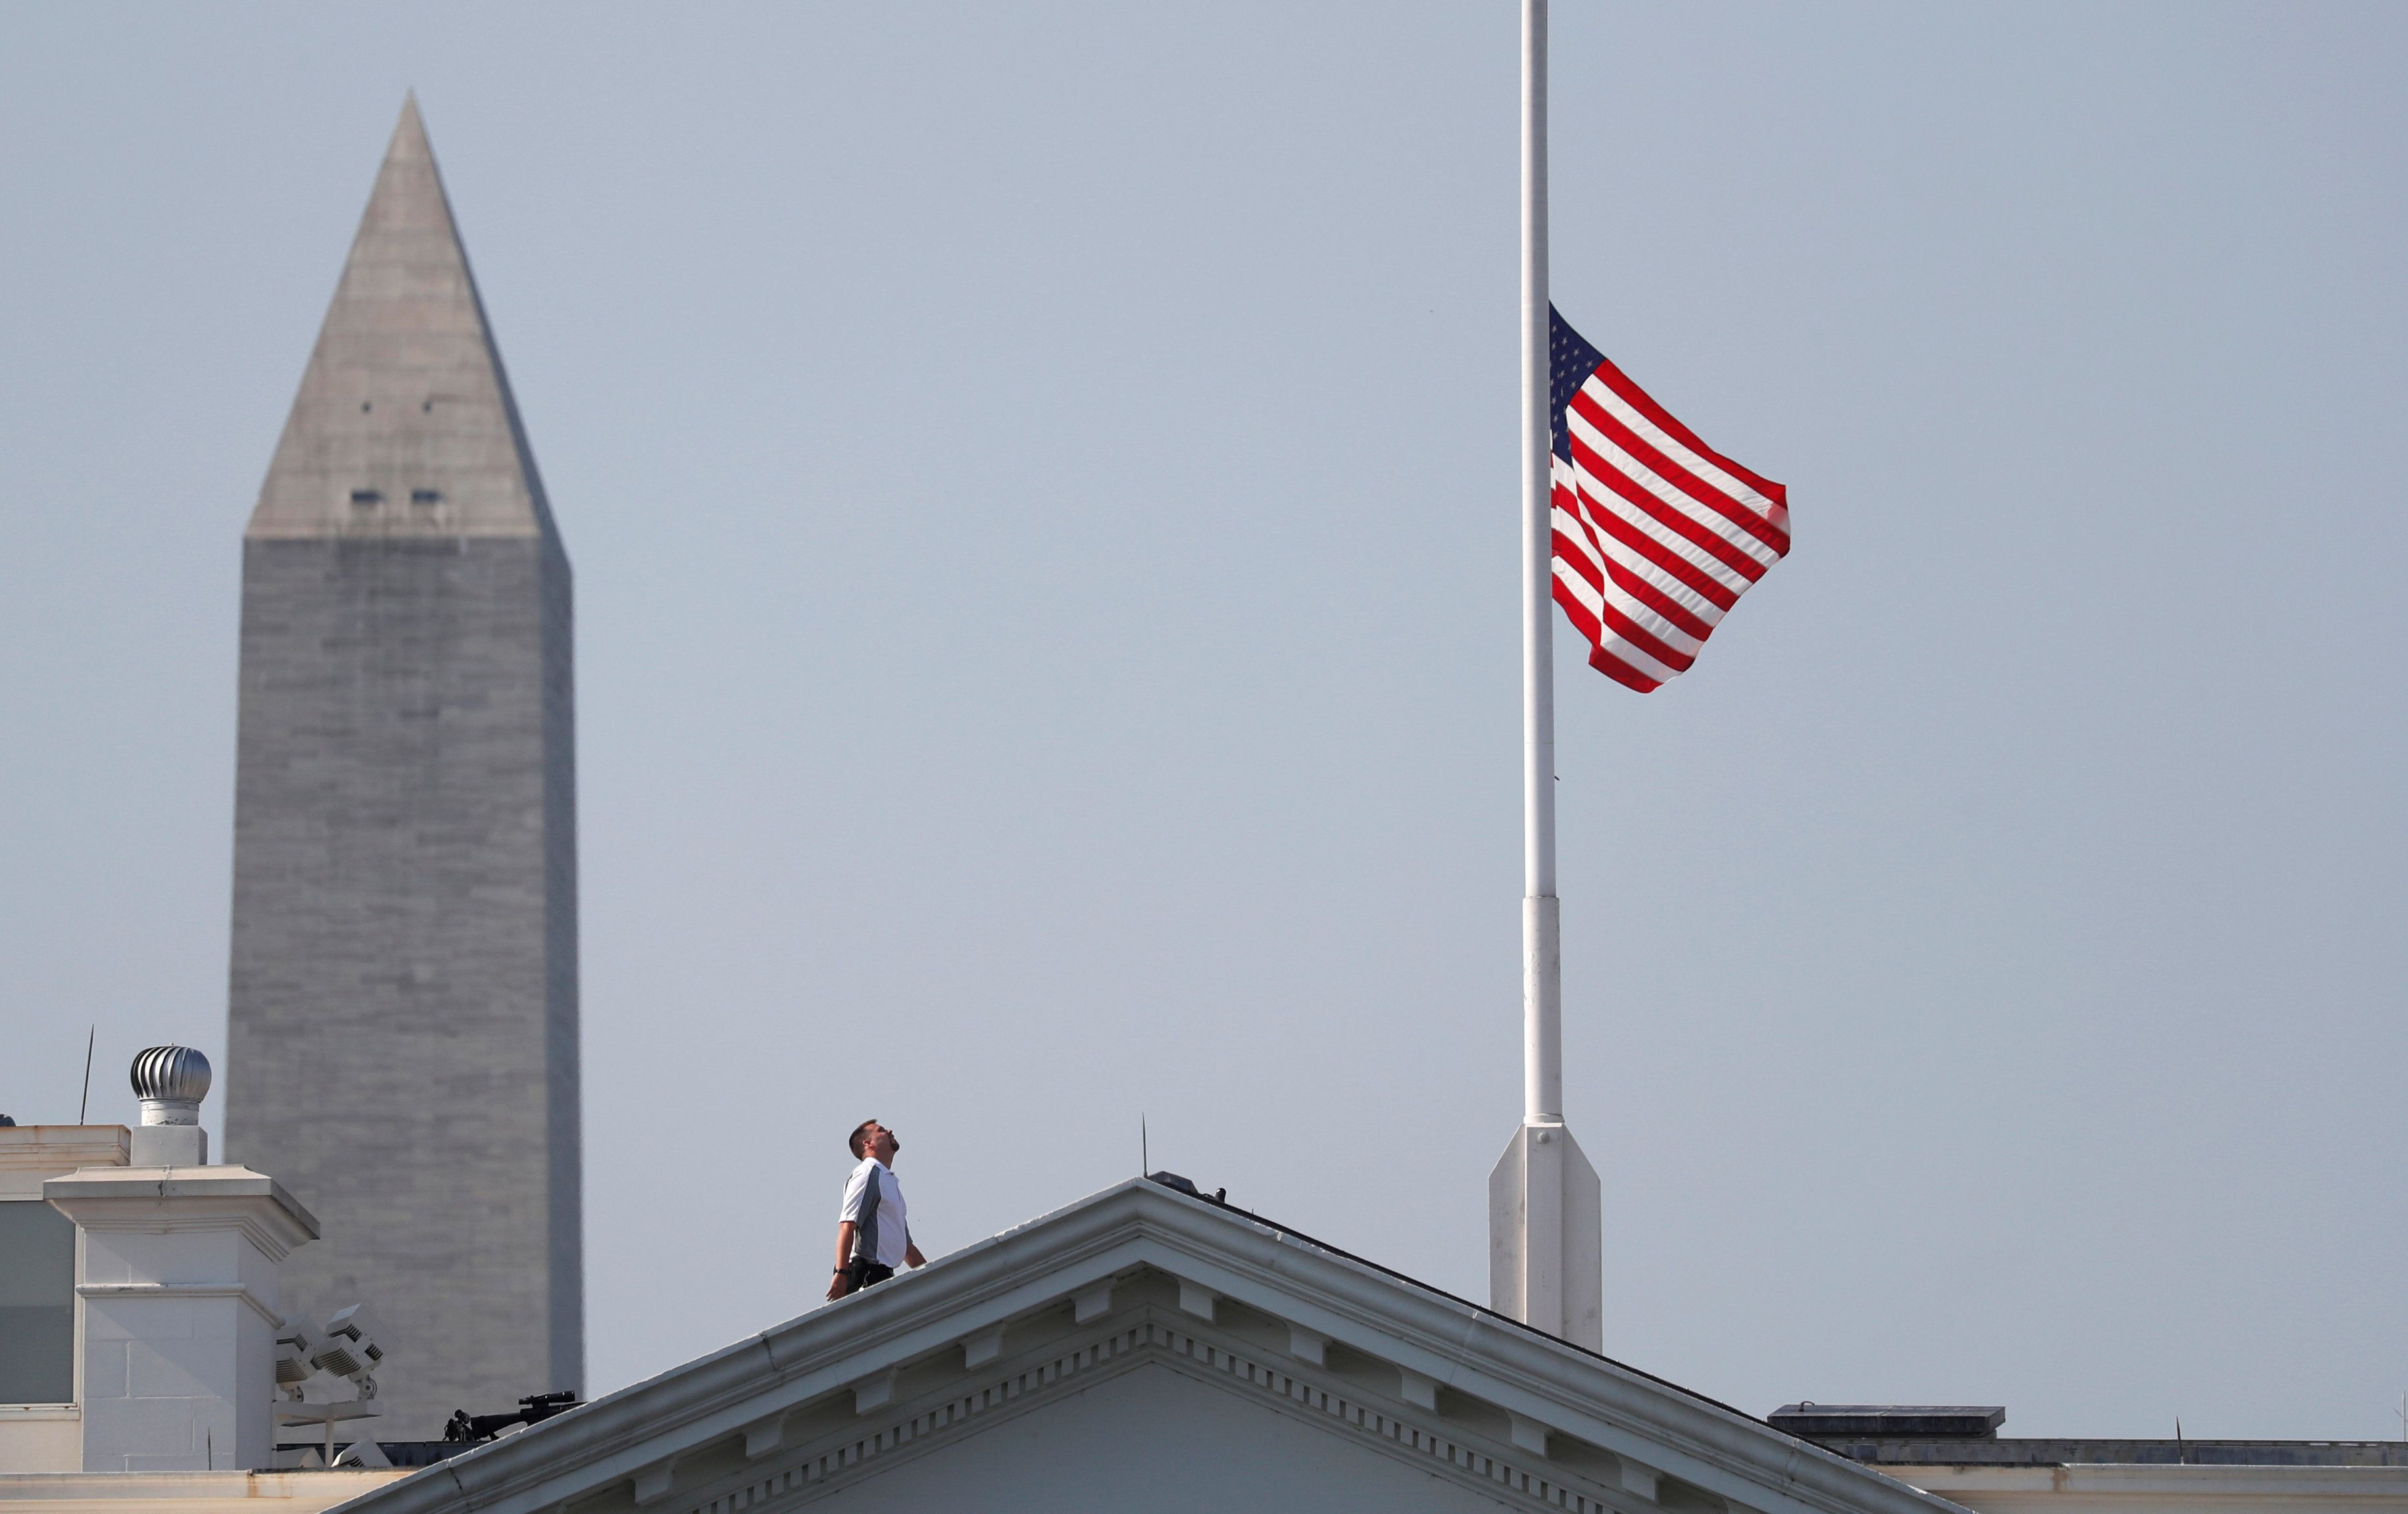 A worker looks up after lowering the flag over the White House in Washington to half-staff to honor victims of the shooting a